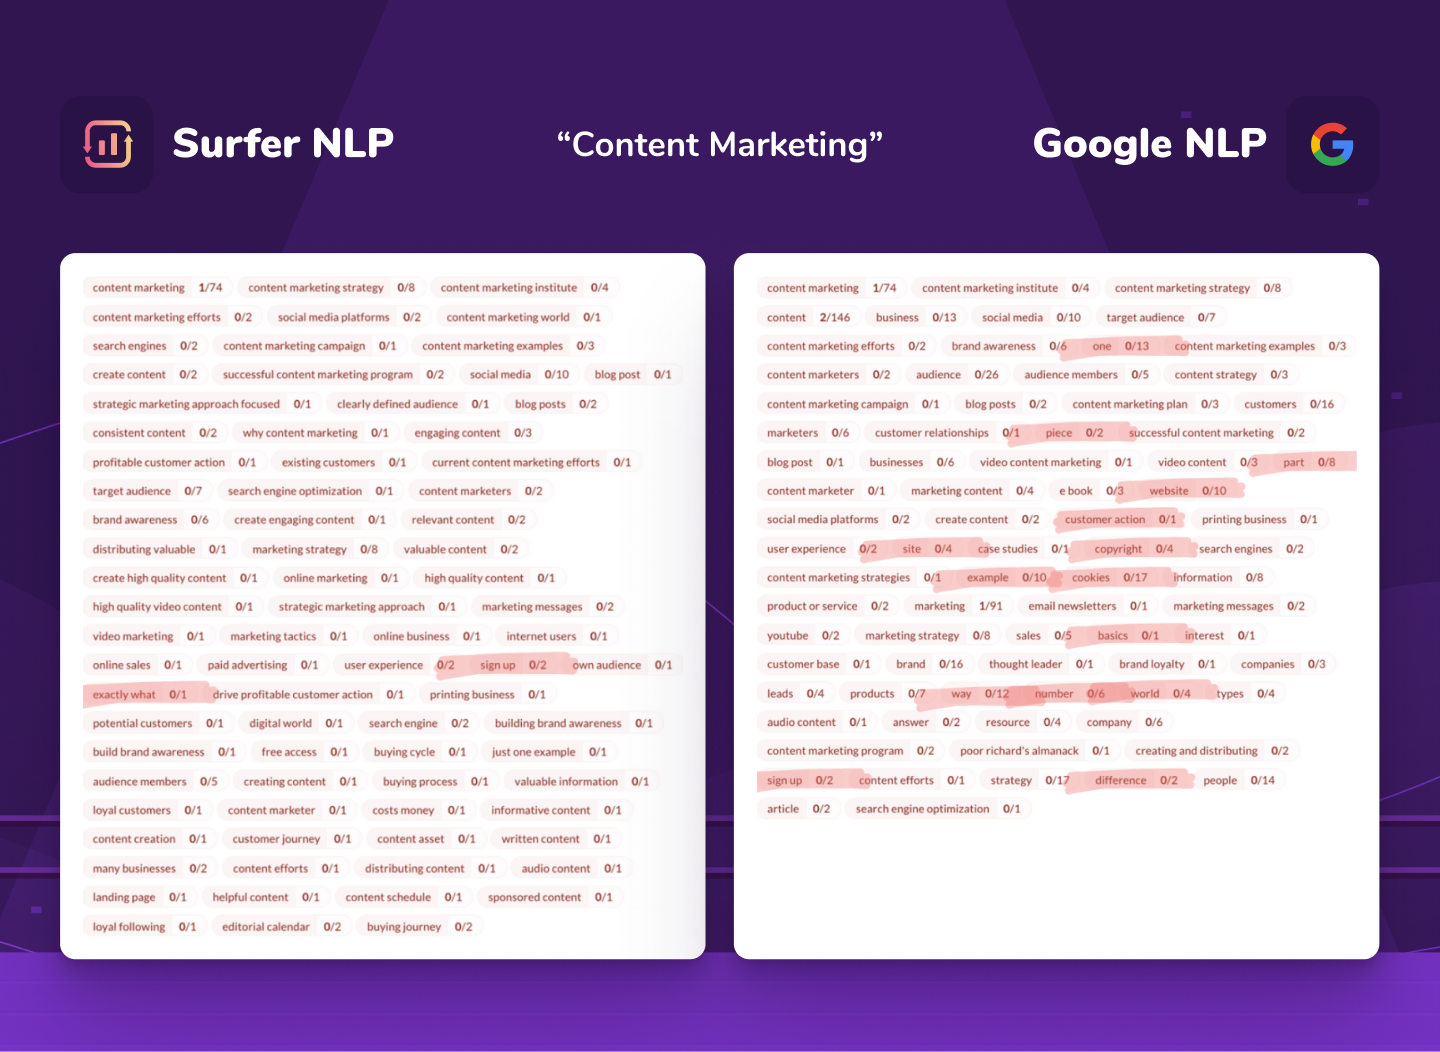 """comparison of Surfer NLP and Google NLP for """"content marketing"""" keyword"""